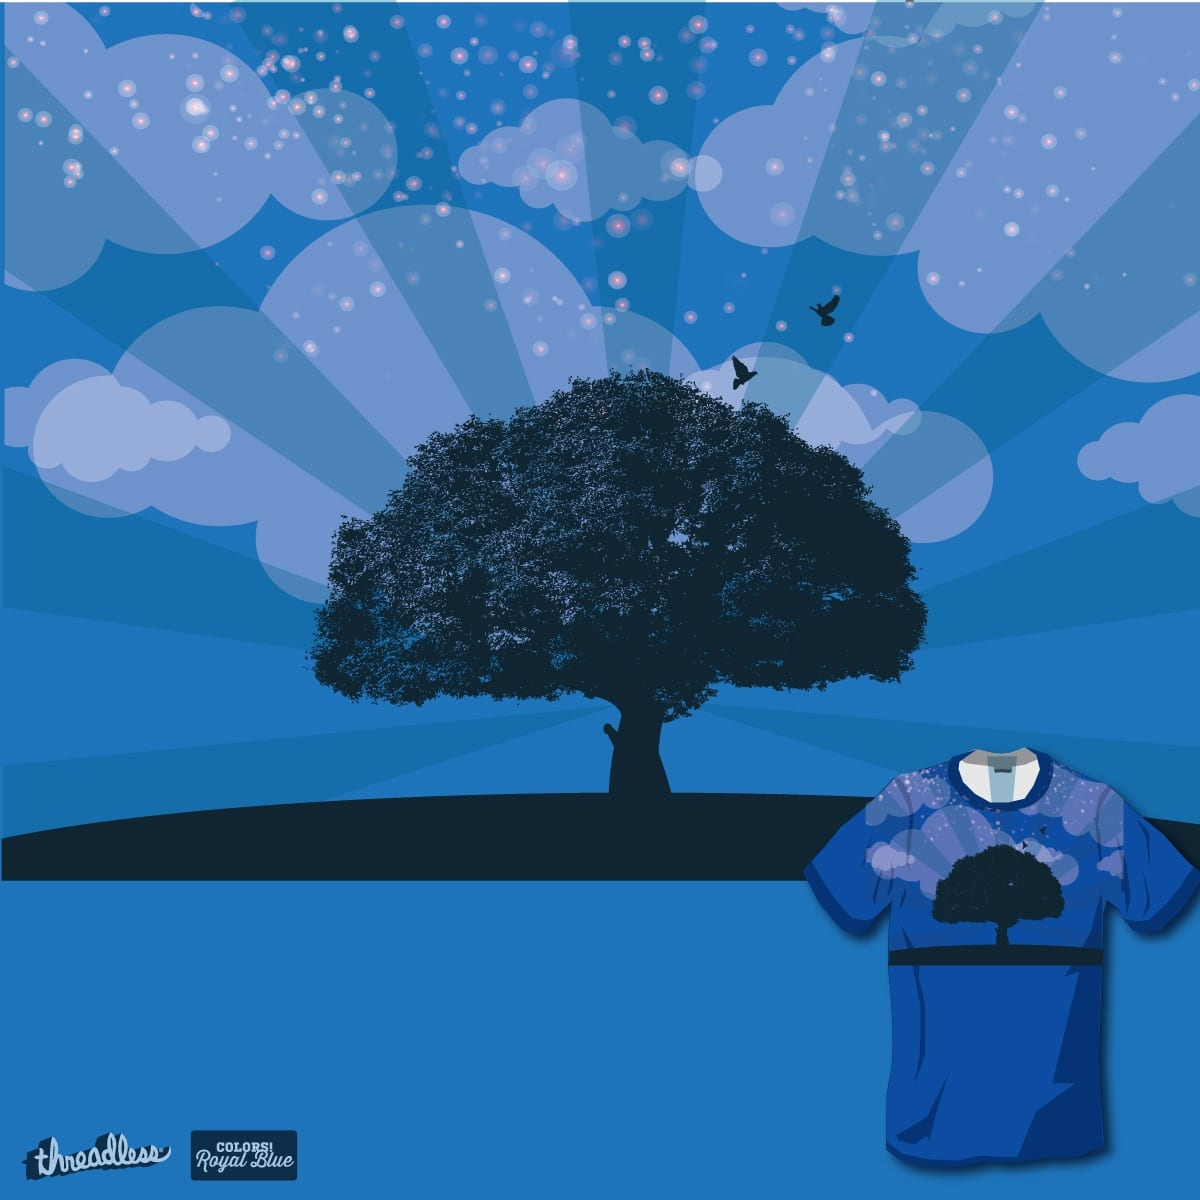 TREE OF LIFE by cosmincupi on Threadless